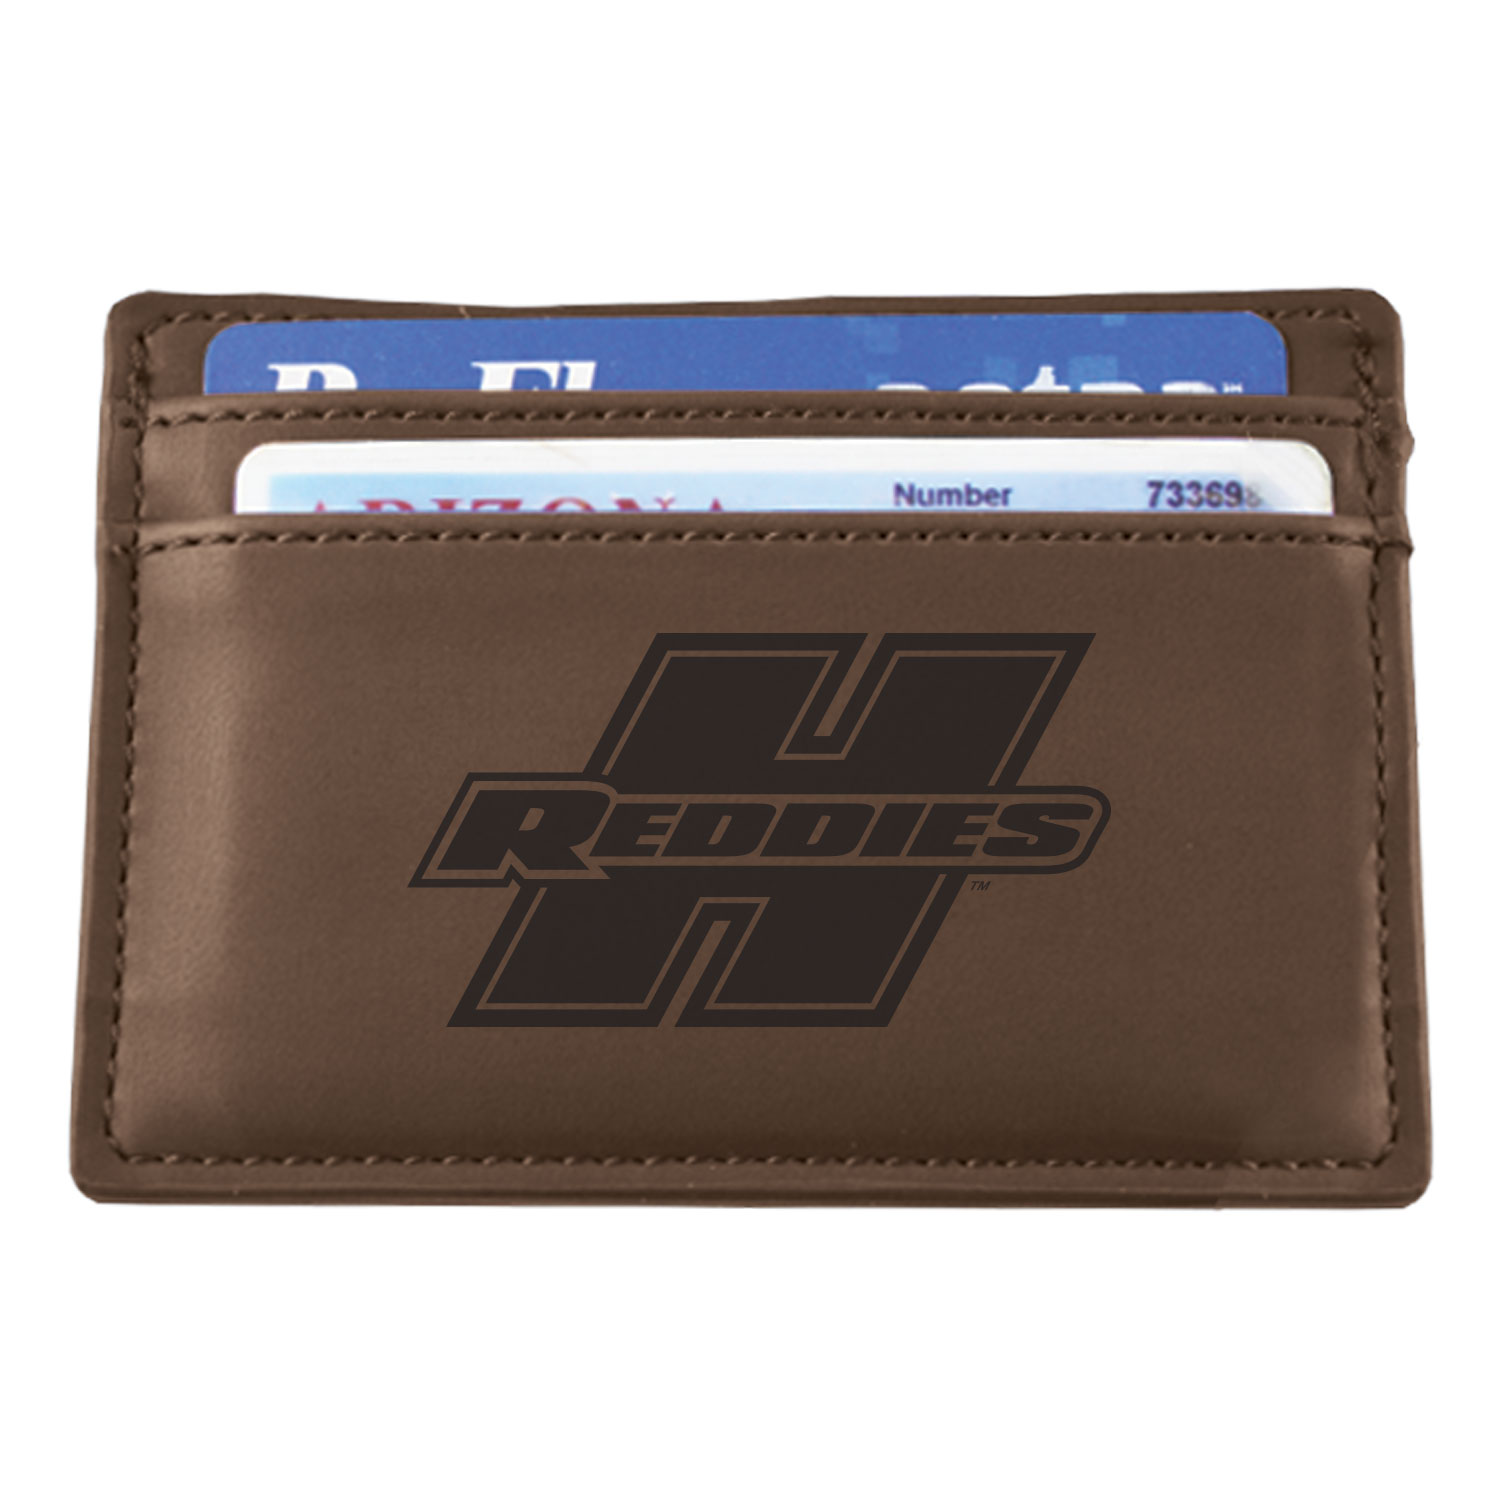 Henderson Reddies Money Clip Wallet